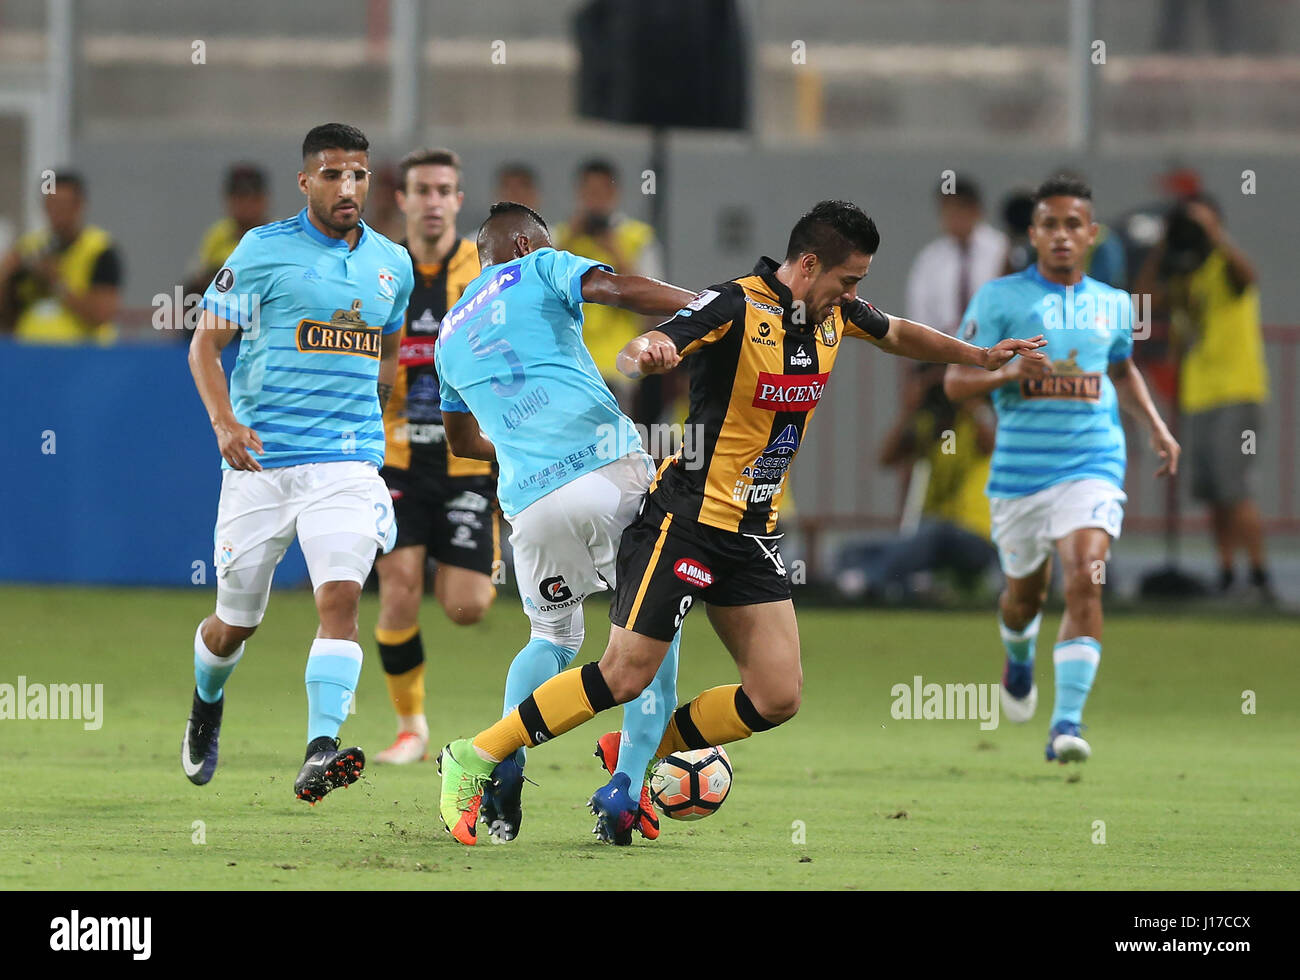 The Strongest's Rodrigo Ramallo (R) vies for the ball with Sporting Cristal's Pedro Aquino (L) during their - Stock Image